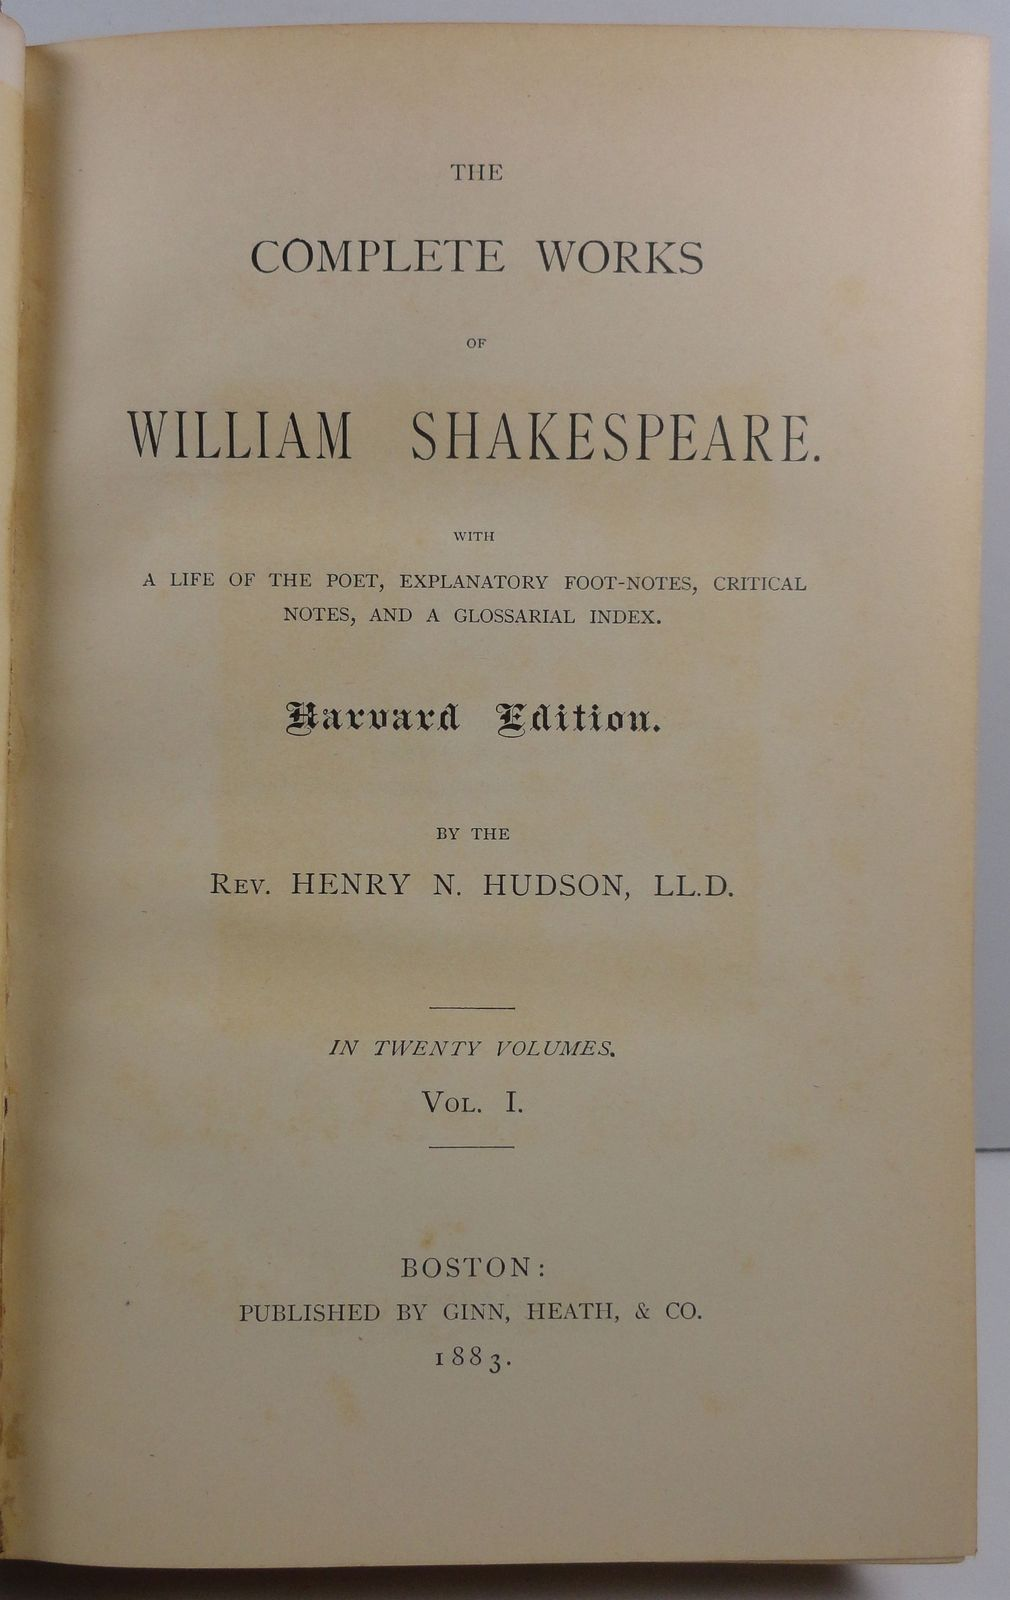 The Complete Works of William Shakespeare Henry Hudson 1883